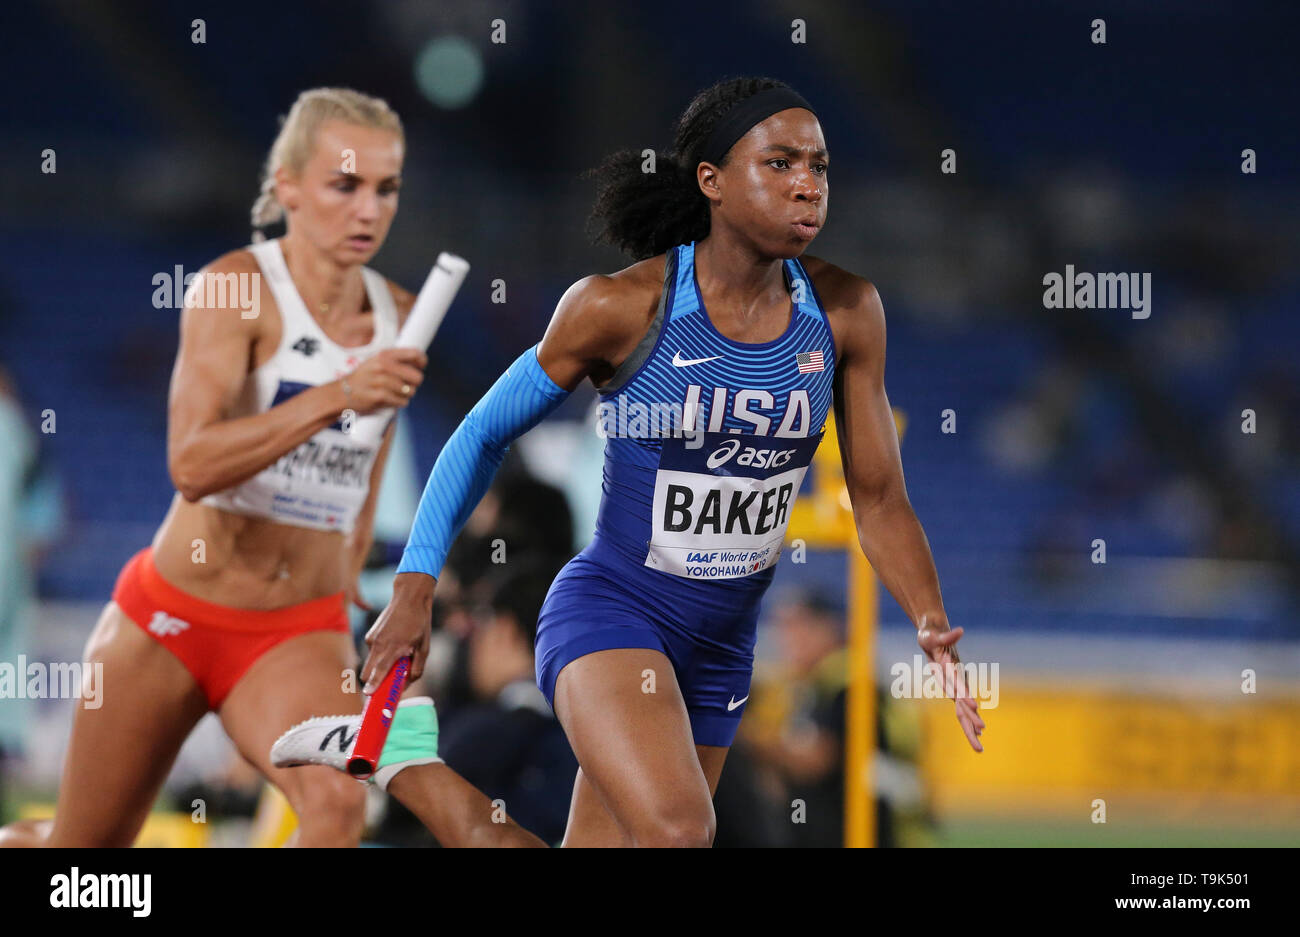 YOKOHAMA, JAPAN - MAY 10: Olivia Baker of the USA in the mixed 4x400m relay during Day 1 of the 2019 IAAF World Relay Championships at the Nissan Stadium on Saturday May 11, 2019 in Yokohama, Japan. (Photo by Roger Sedres for the IAAF) - Stock Image